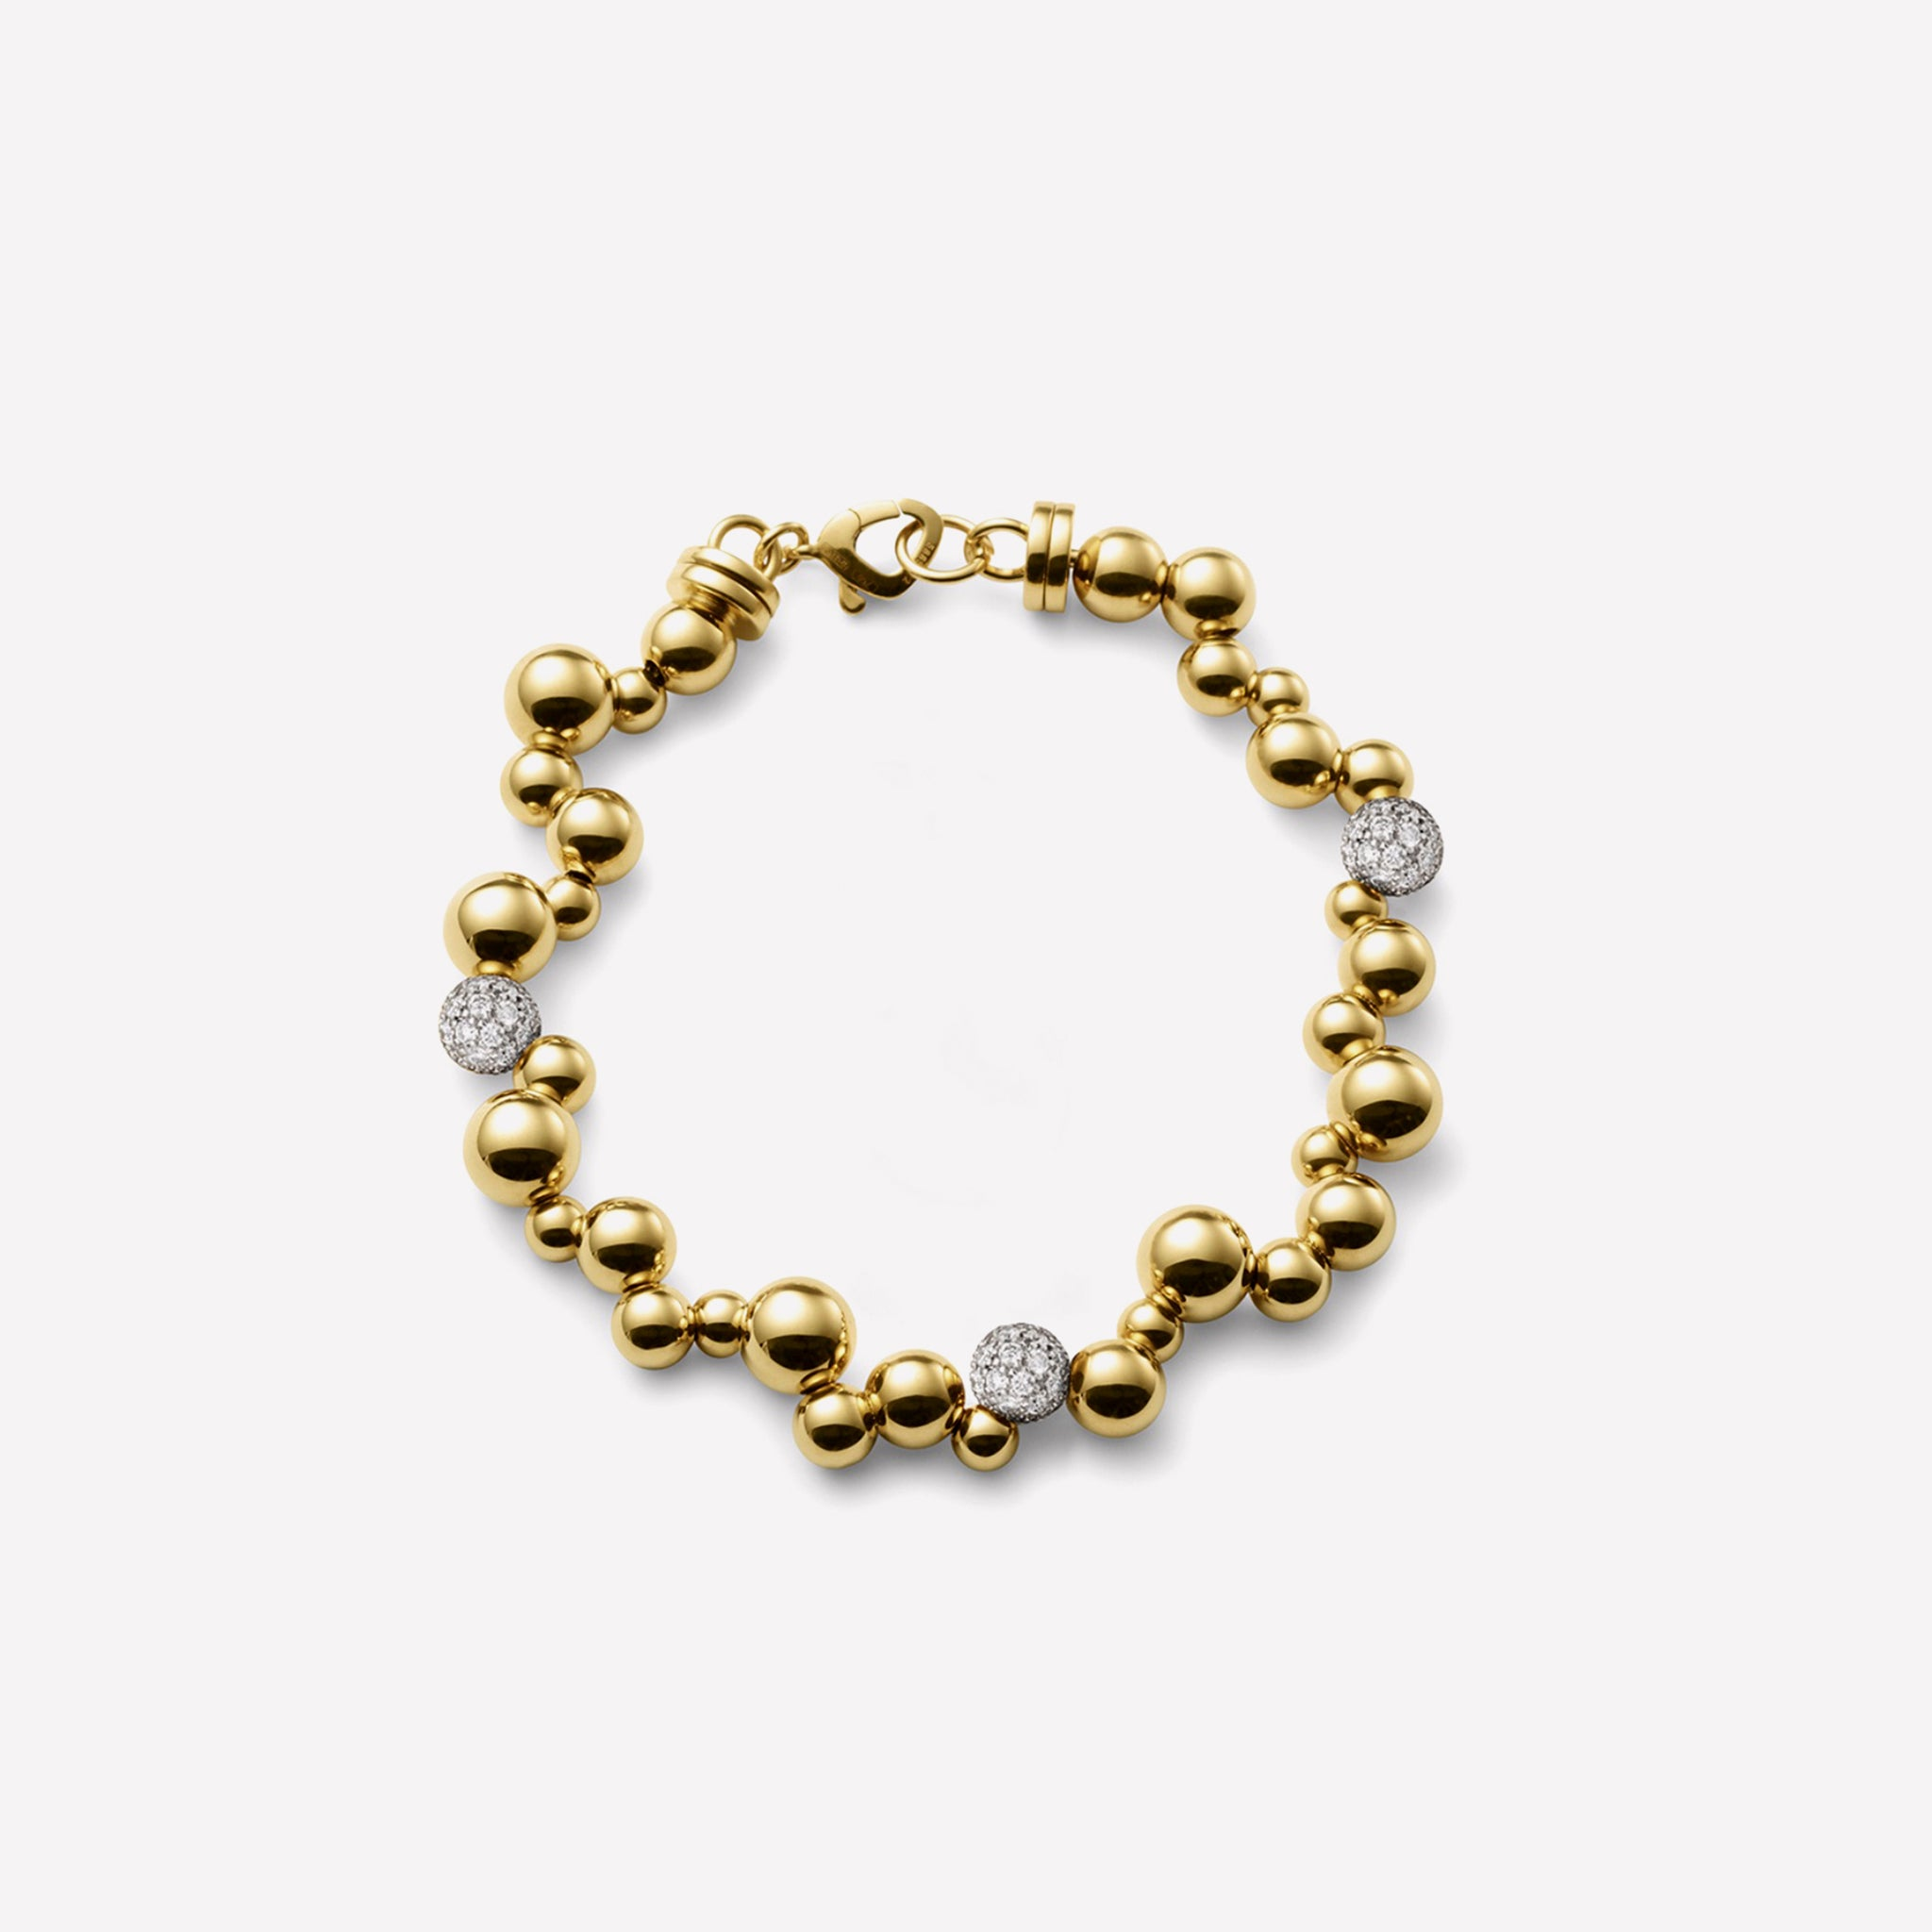 marinab.com, Mini Atomo Pavé Diamond Bracelet